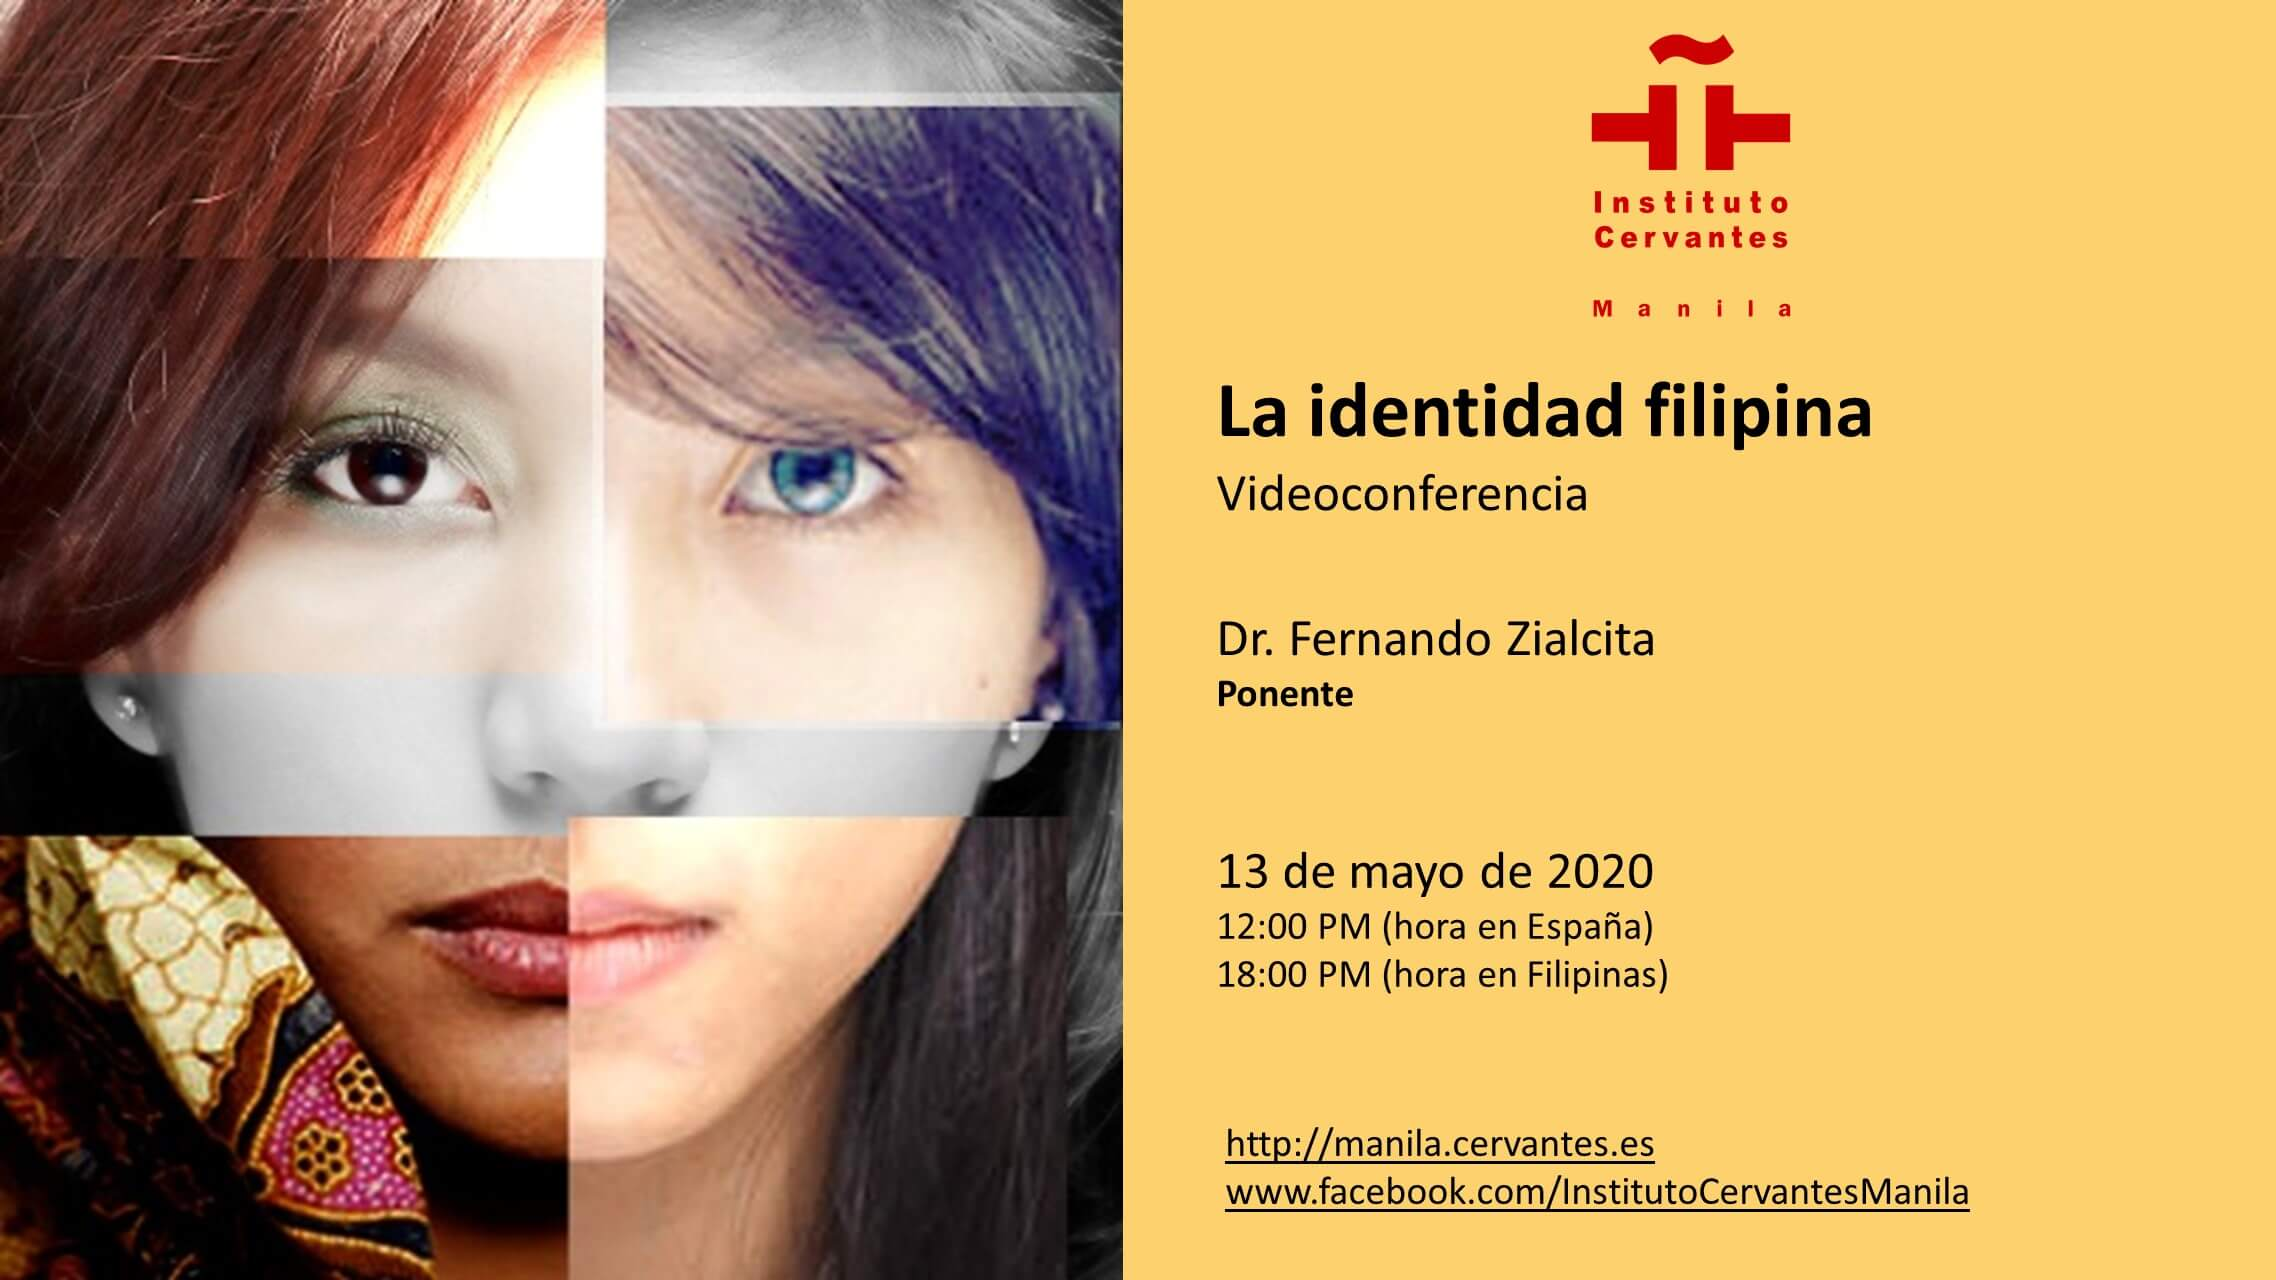 Instituto Cervantes to Hold Online Talk on The Filipino Identity